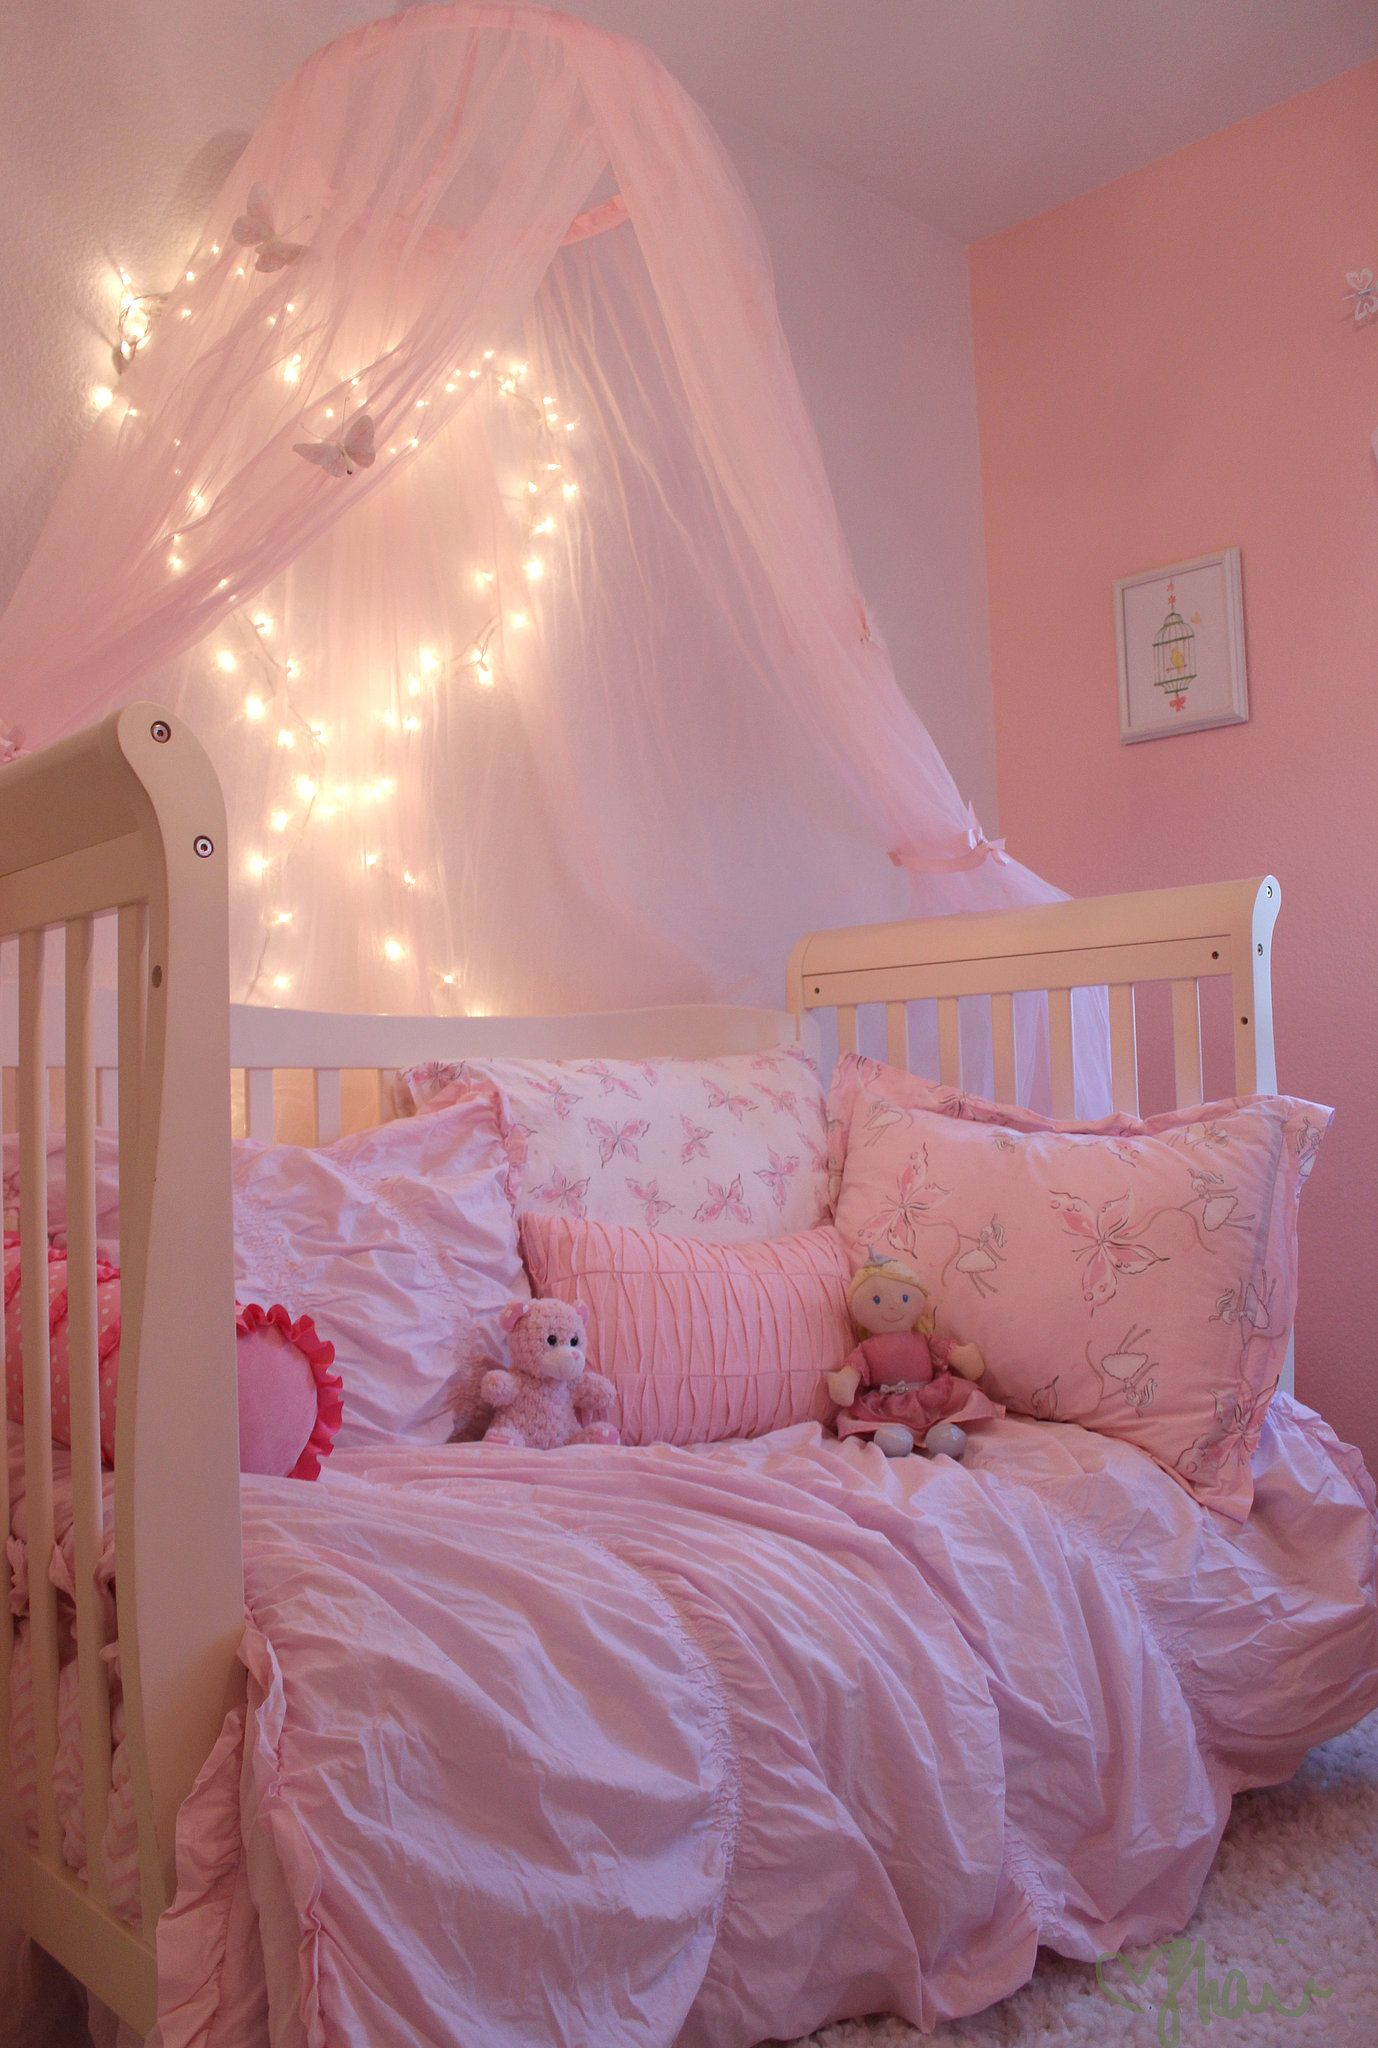 Extra lighting toddler rooms story time and heart shapes - Toddler bedroom ideas for small rooms ...